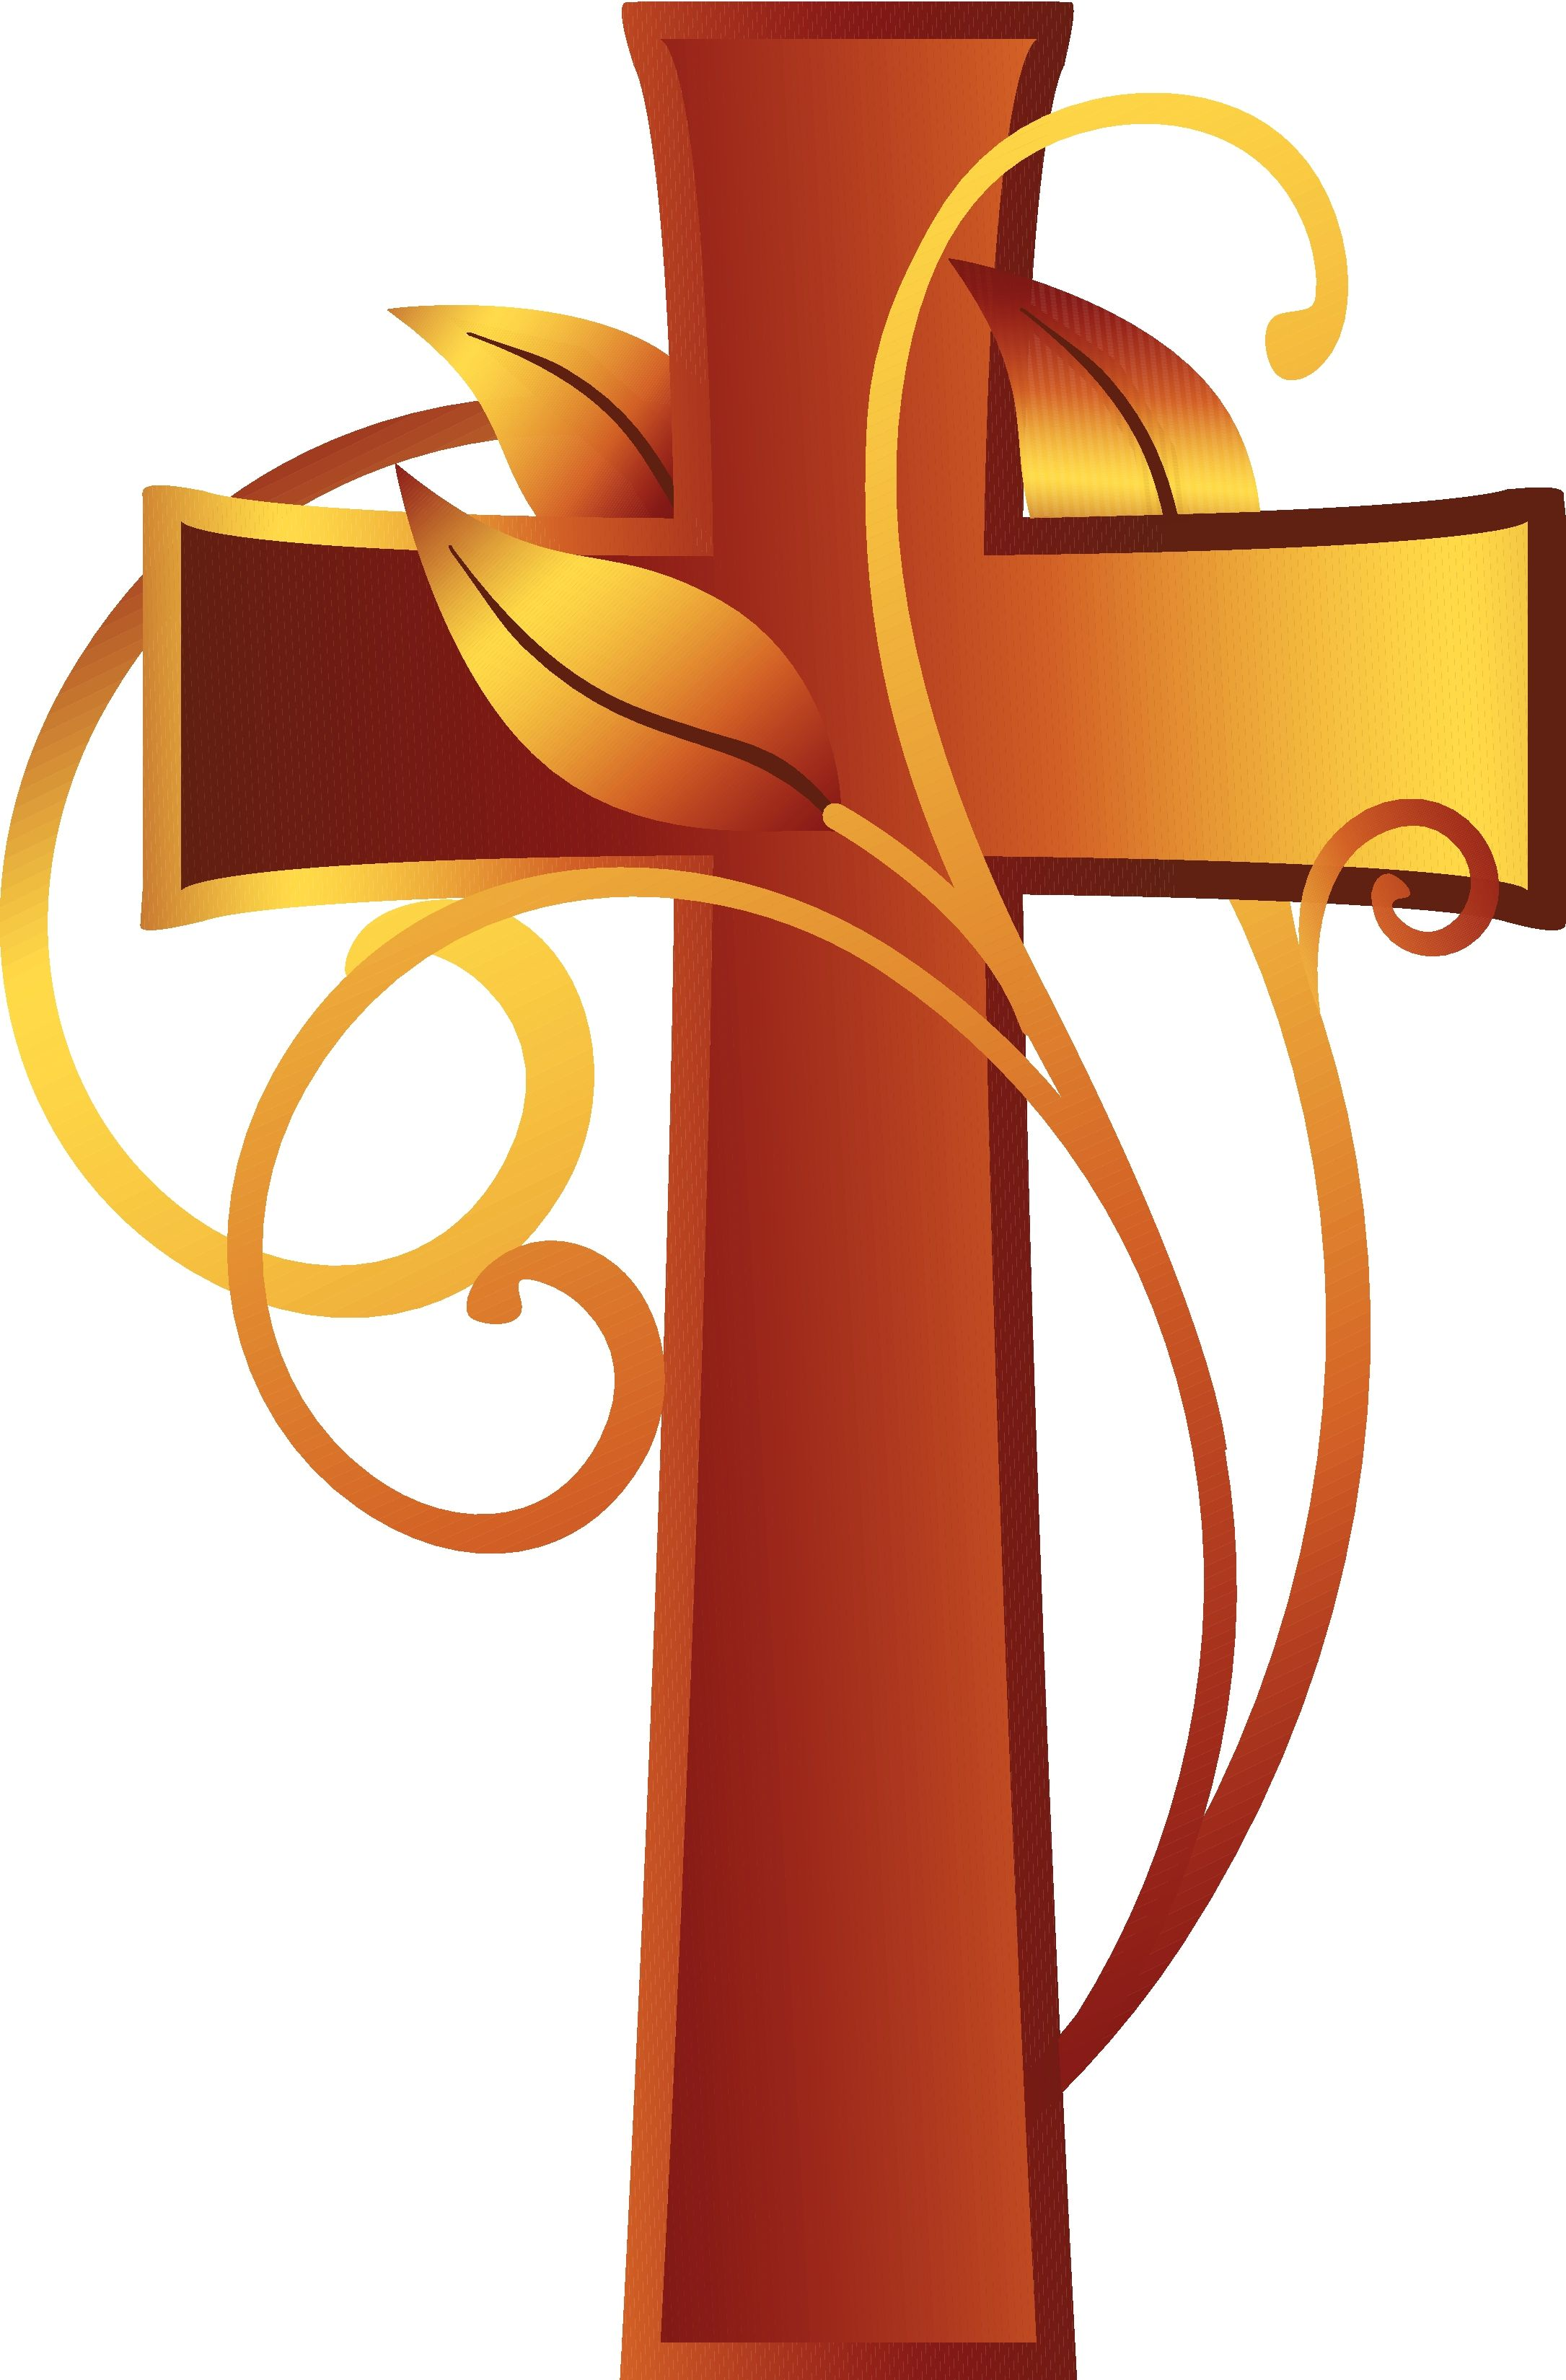 Crucifix clipart tombstone cross. The word became flesh